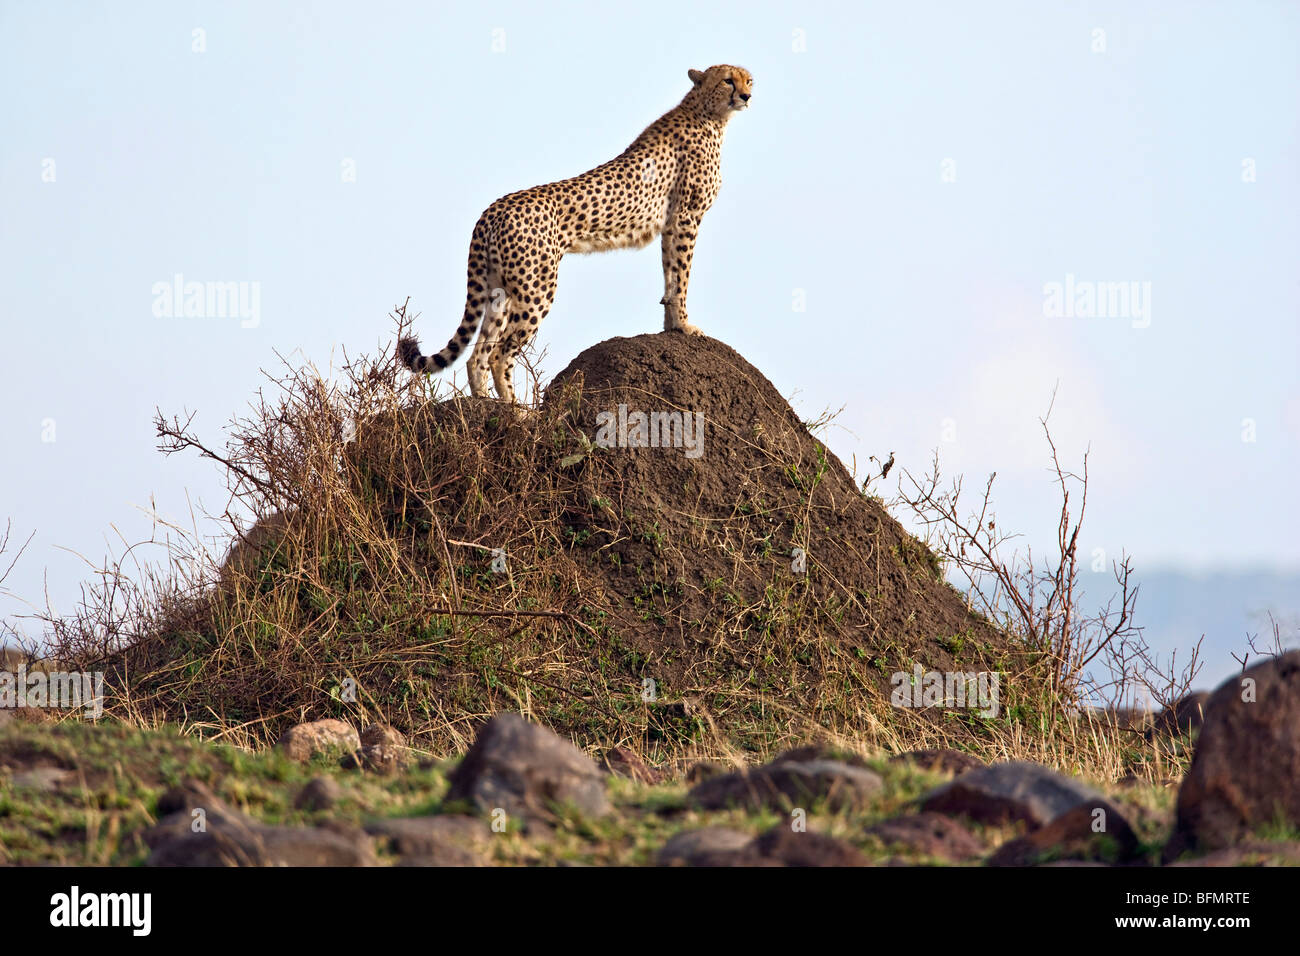 Kenya. A cheetah surveys her surroundings from the top of a termite mound in Masai Mara National Reserve. - Stock Image